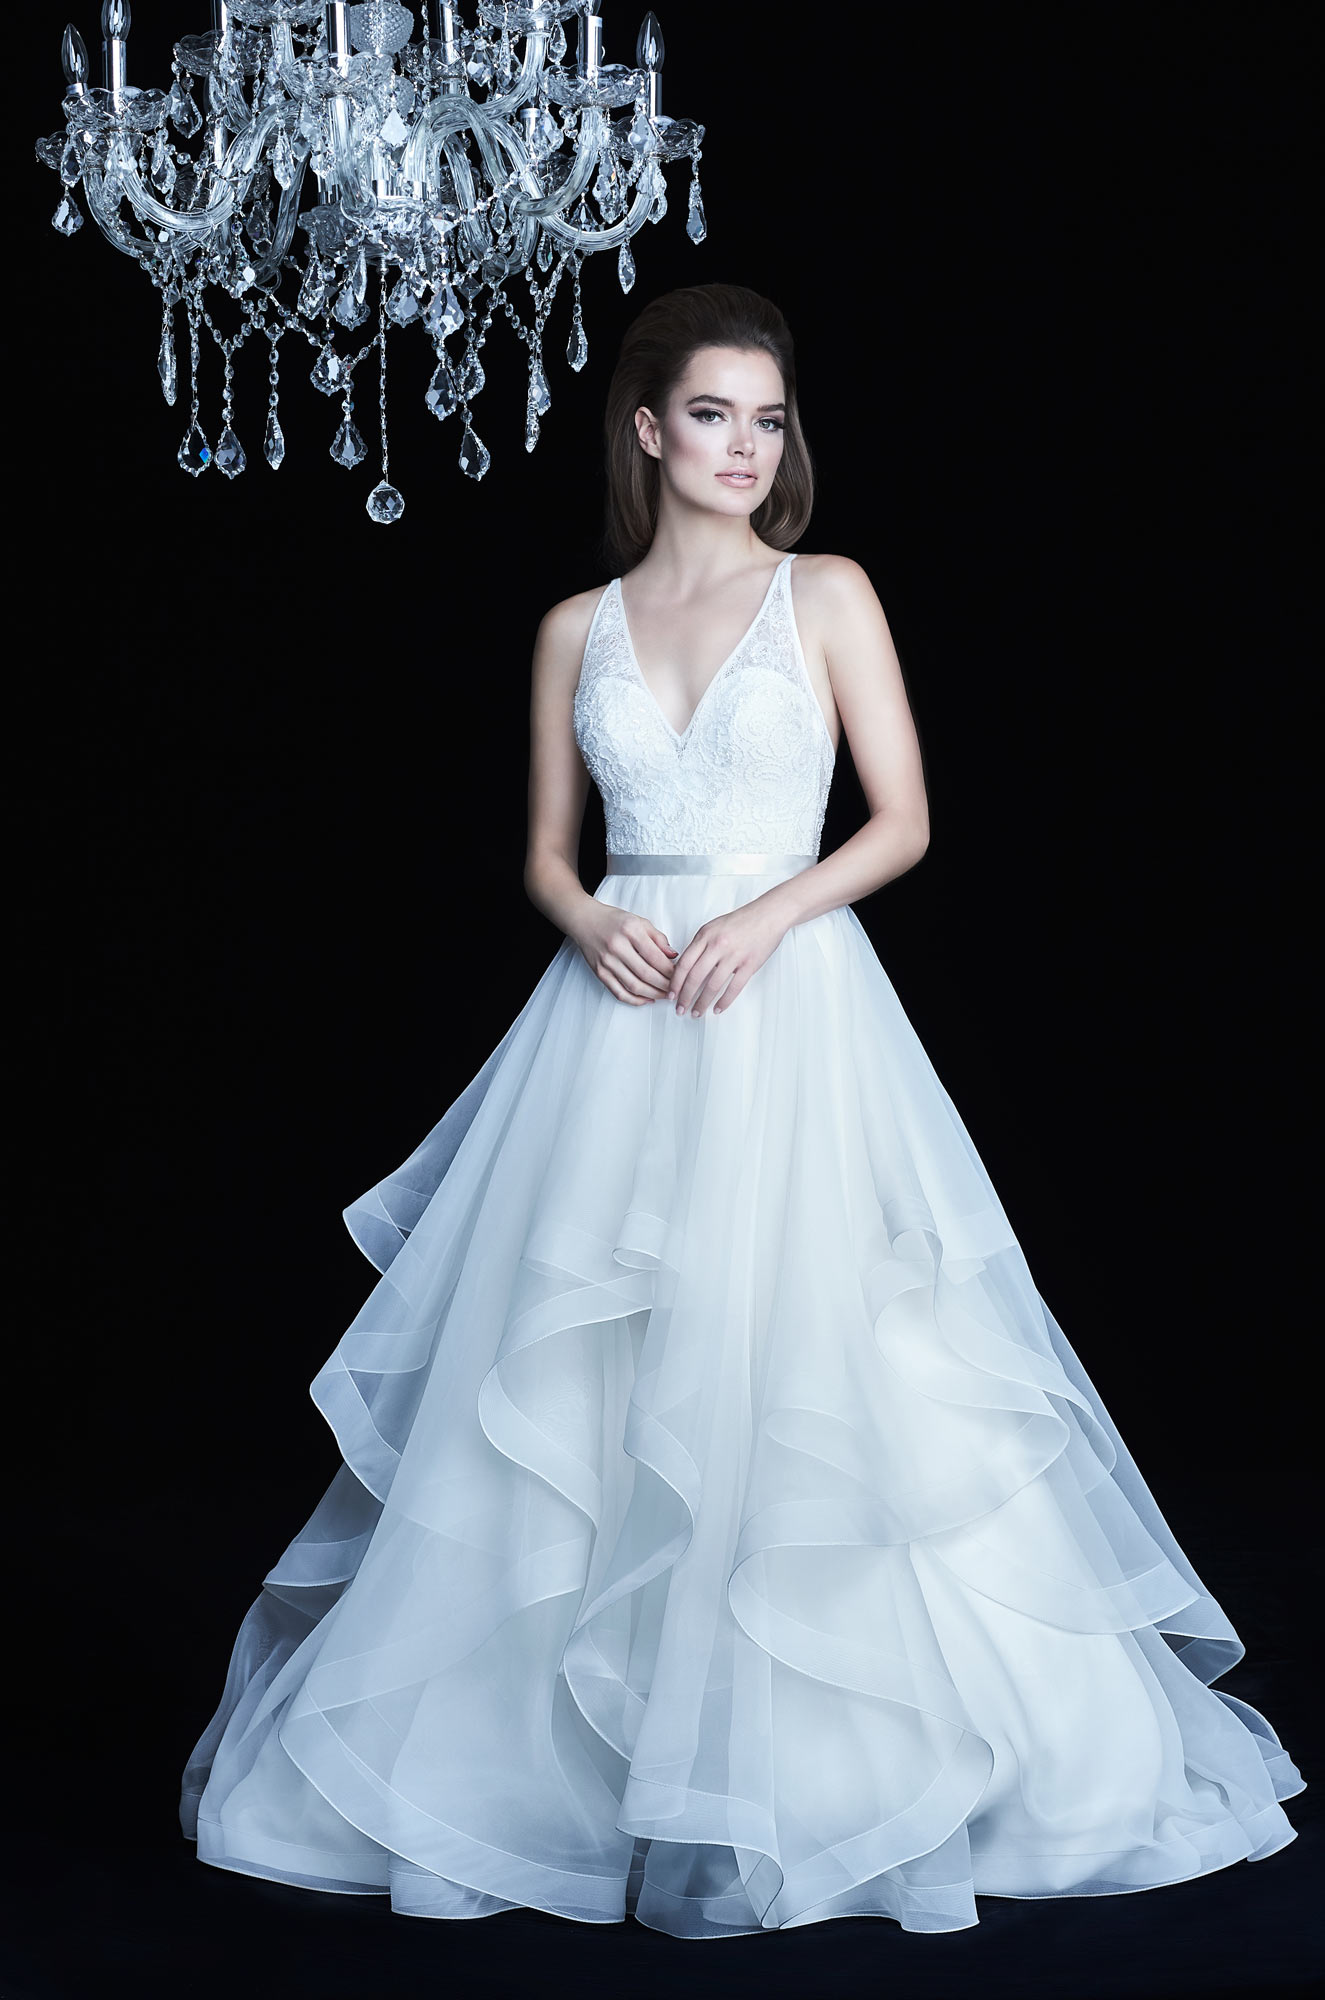 Low V-Neck Wedding Dress - Style #4750 | Paloma Blanca